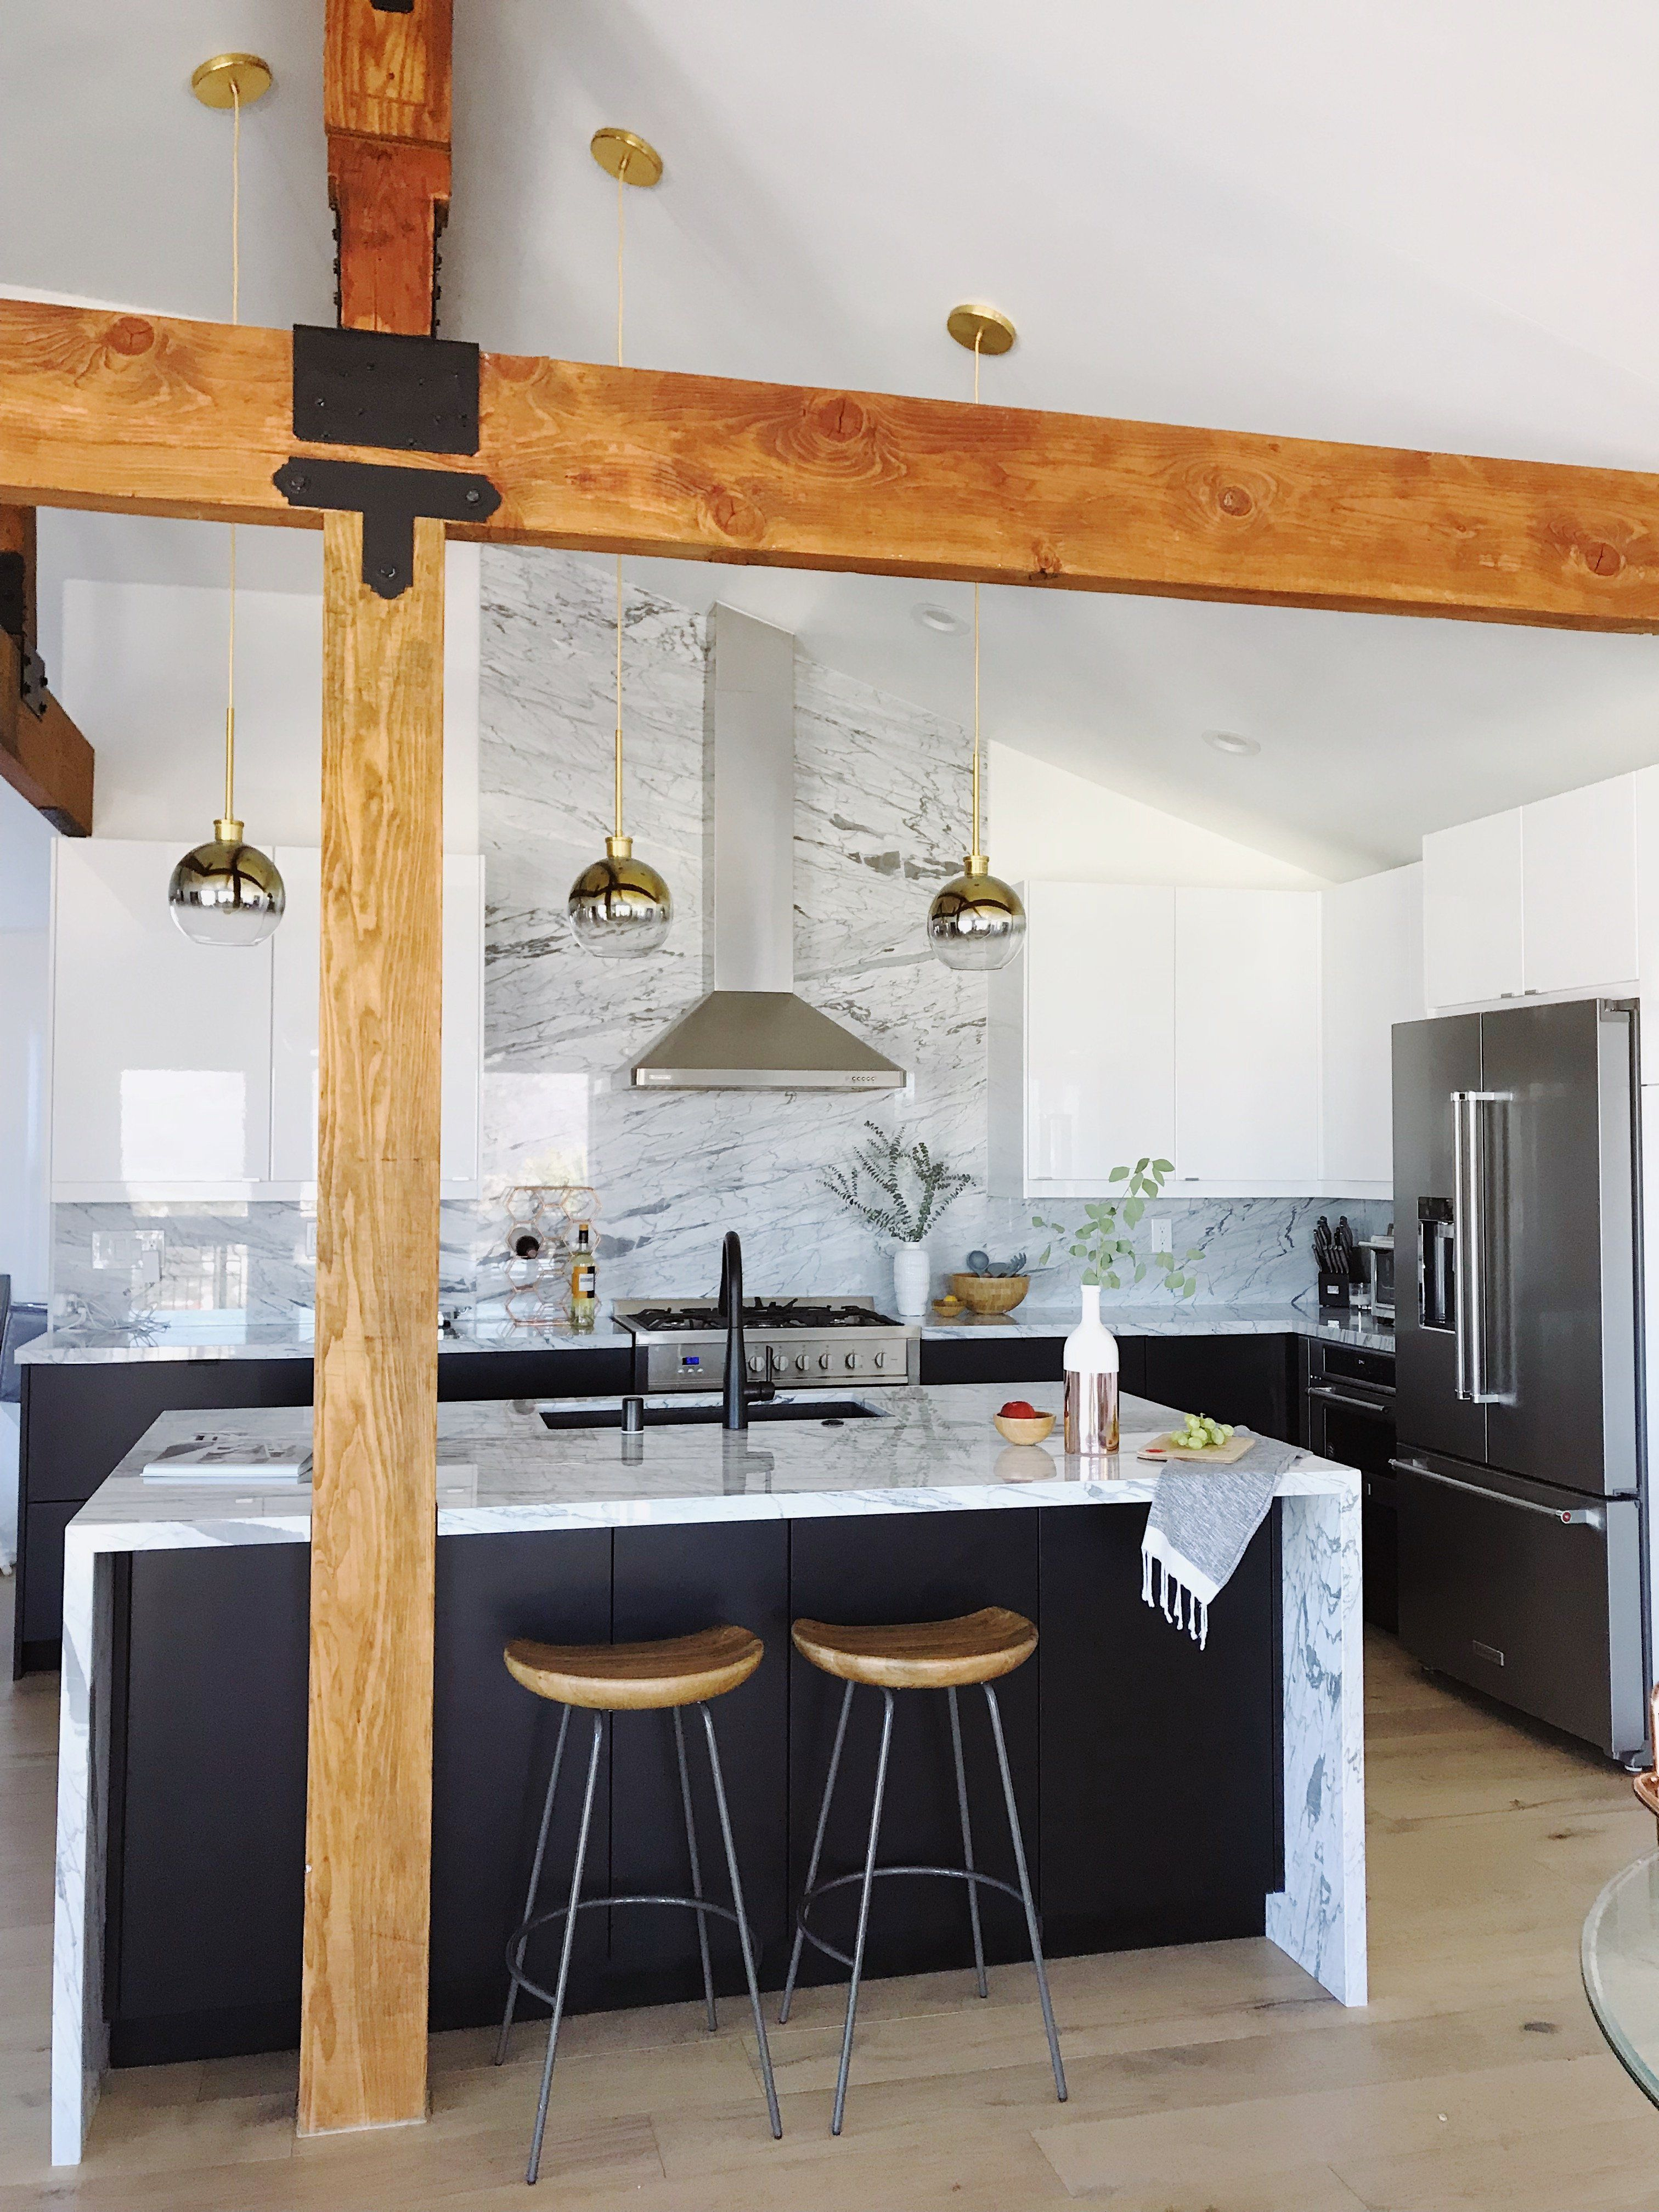 Incredible Black And White Kitchen With Marble Backsplash In 2020 Backsplash Designs White Marble Kitchen Grey Marble Kitchen